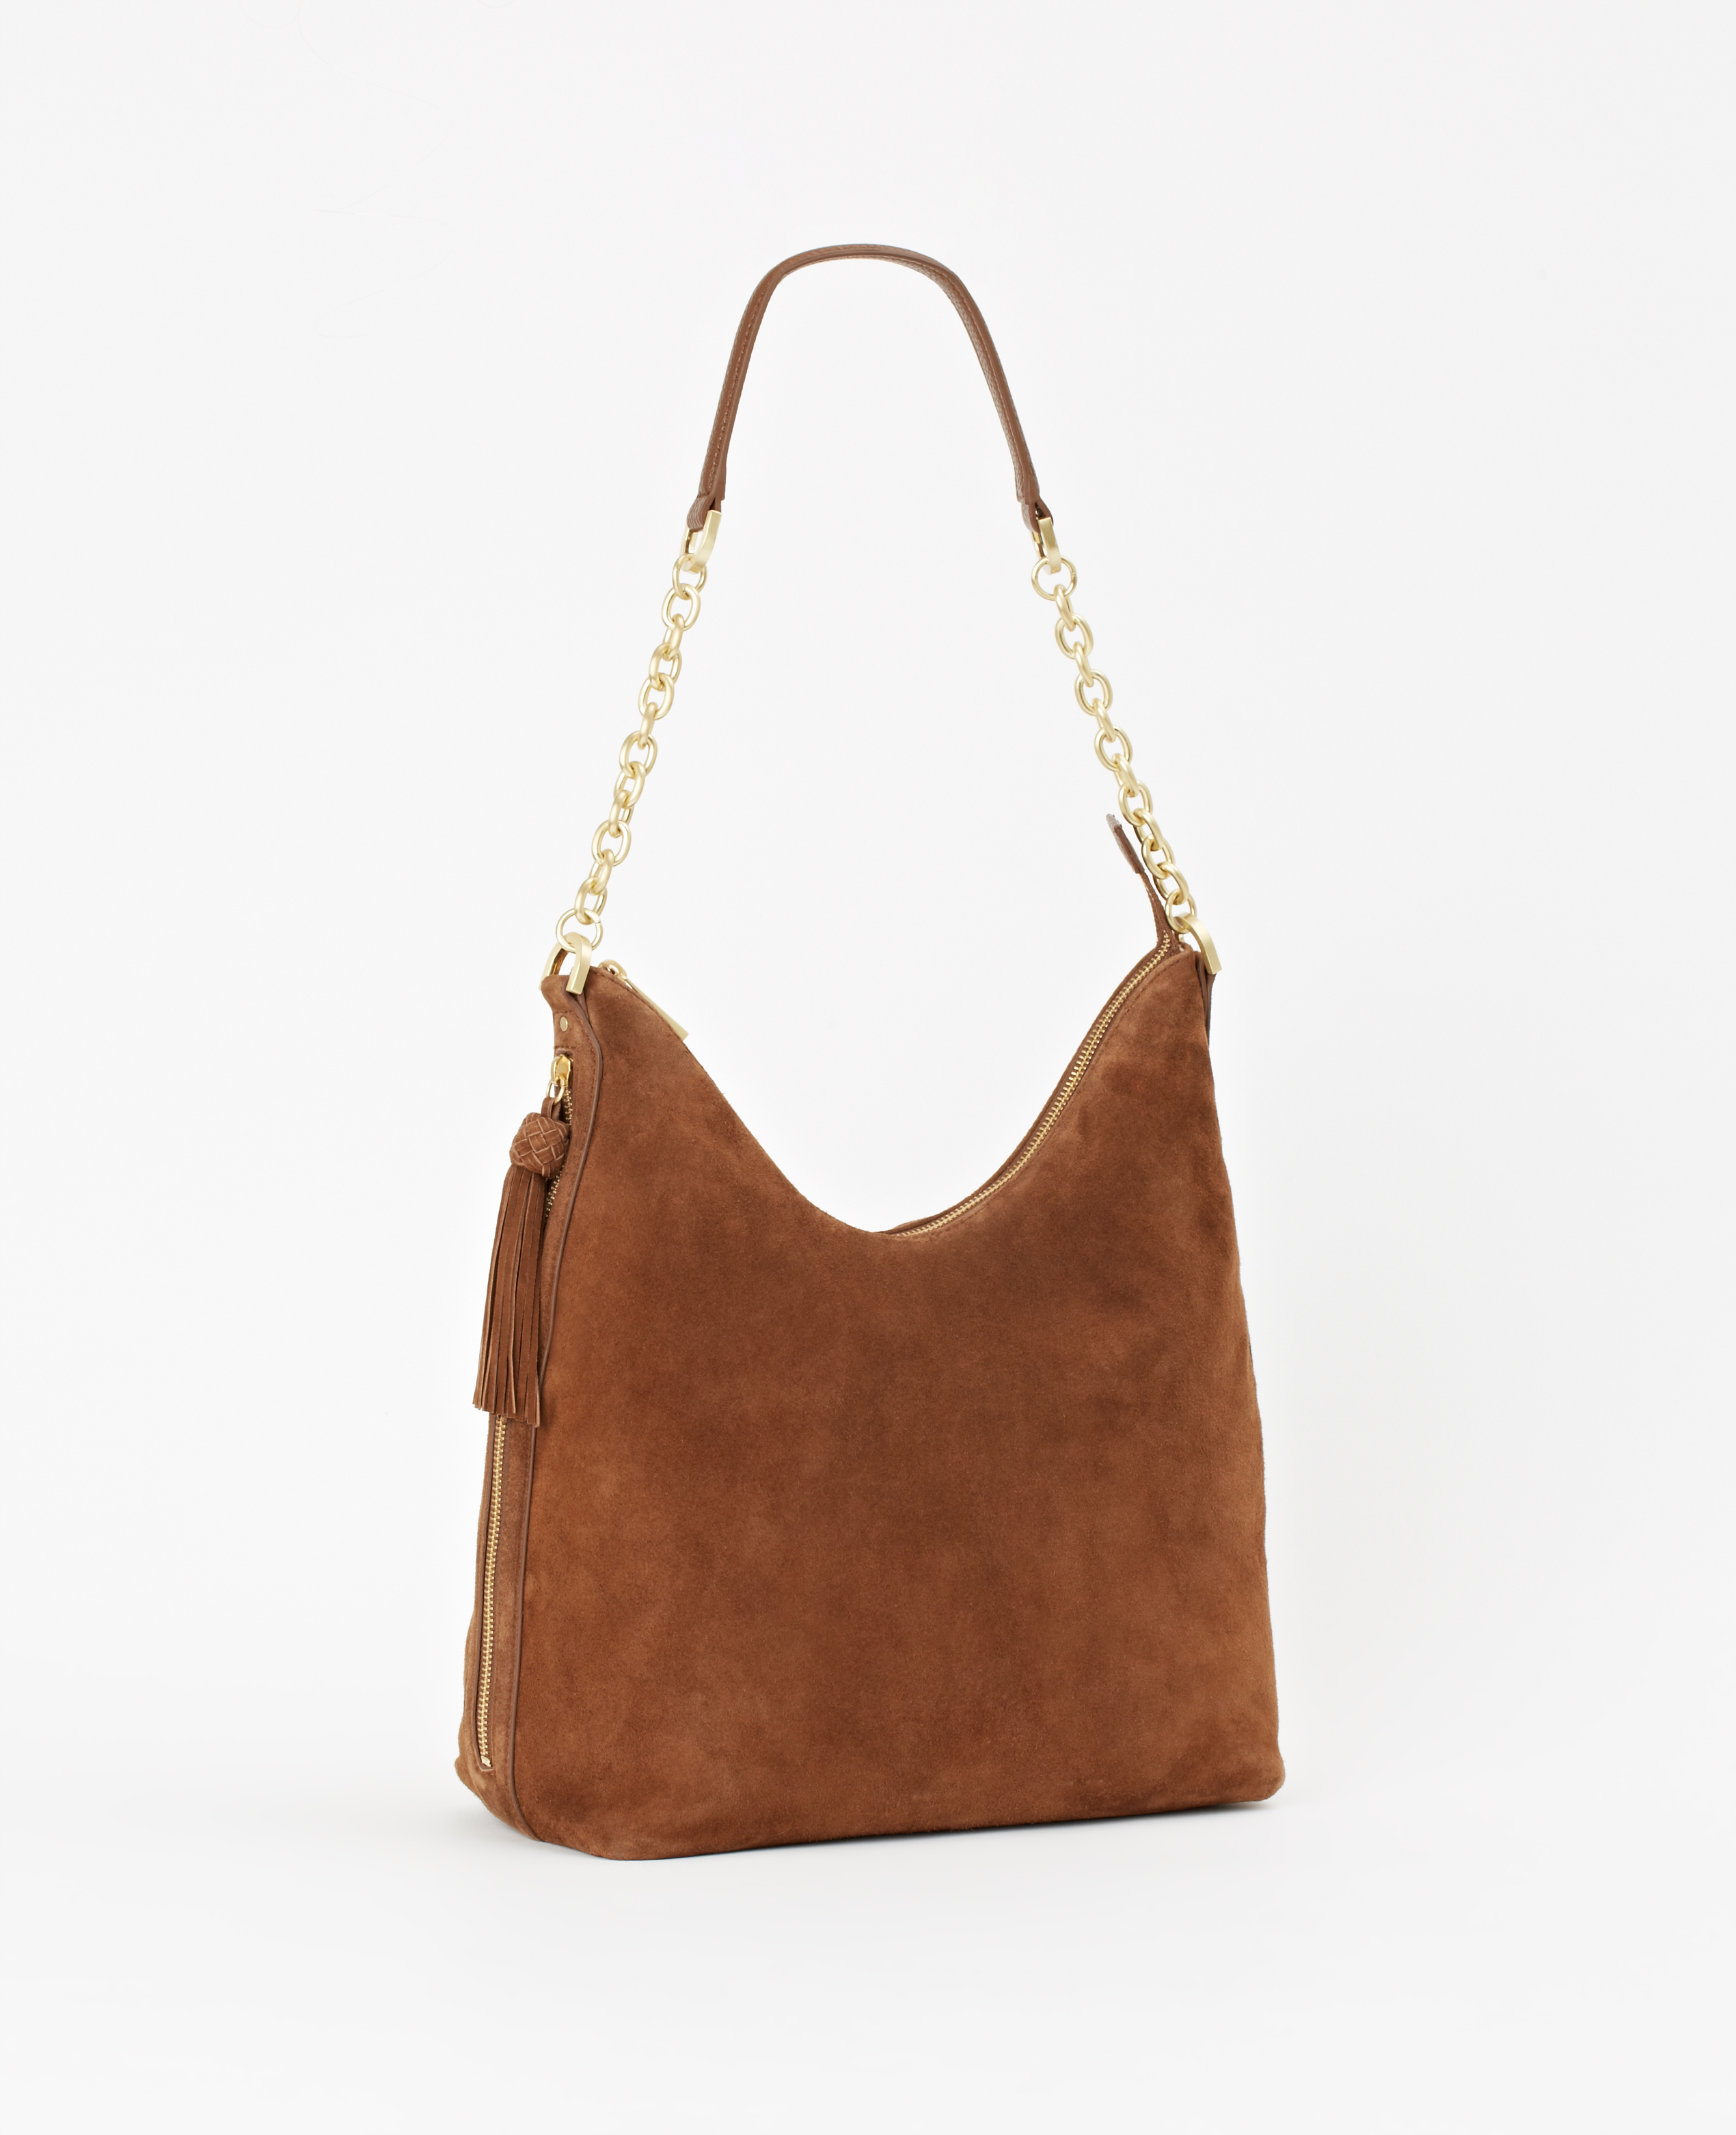 Ann taylor Essex Suede Hobo Bag in Brown | Lyst